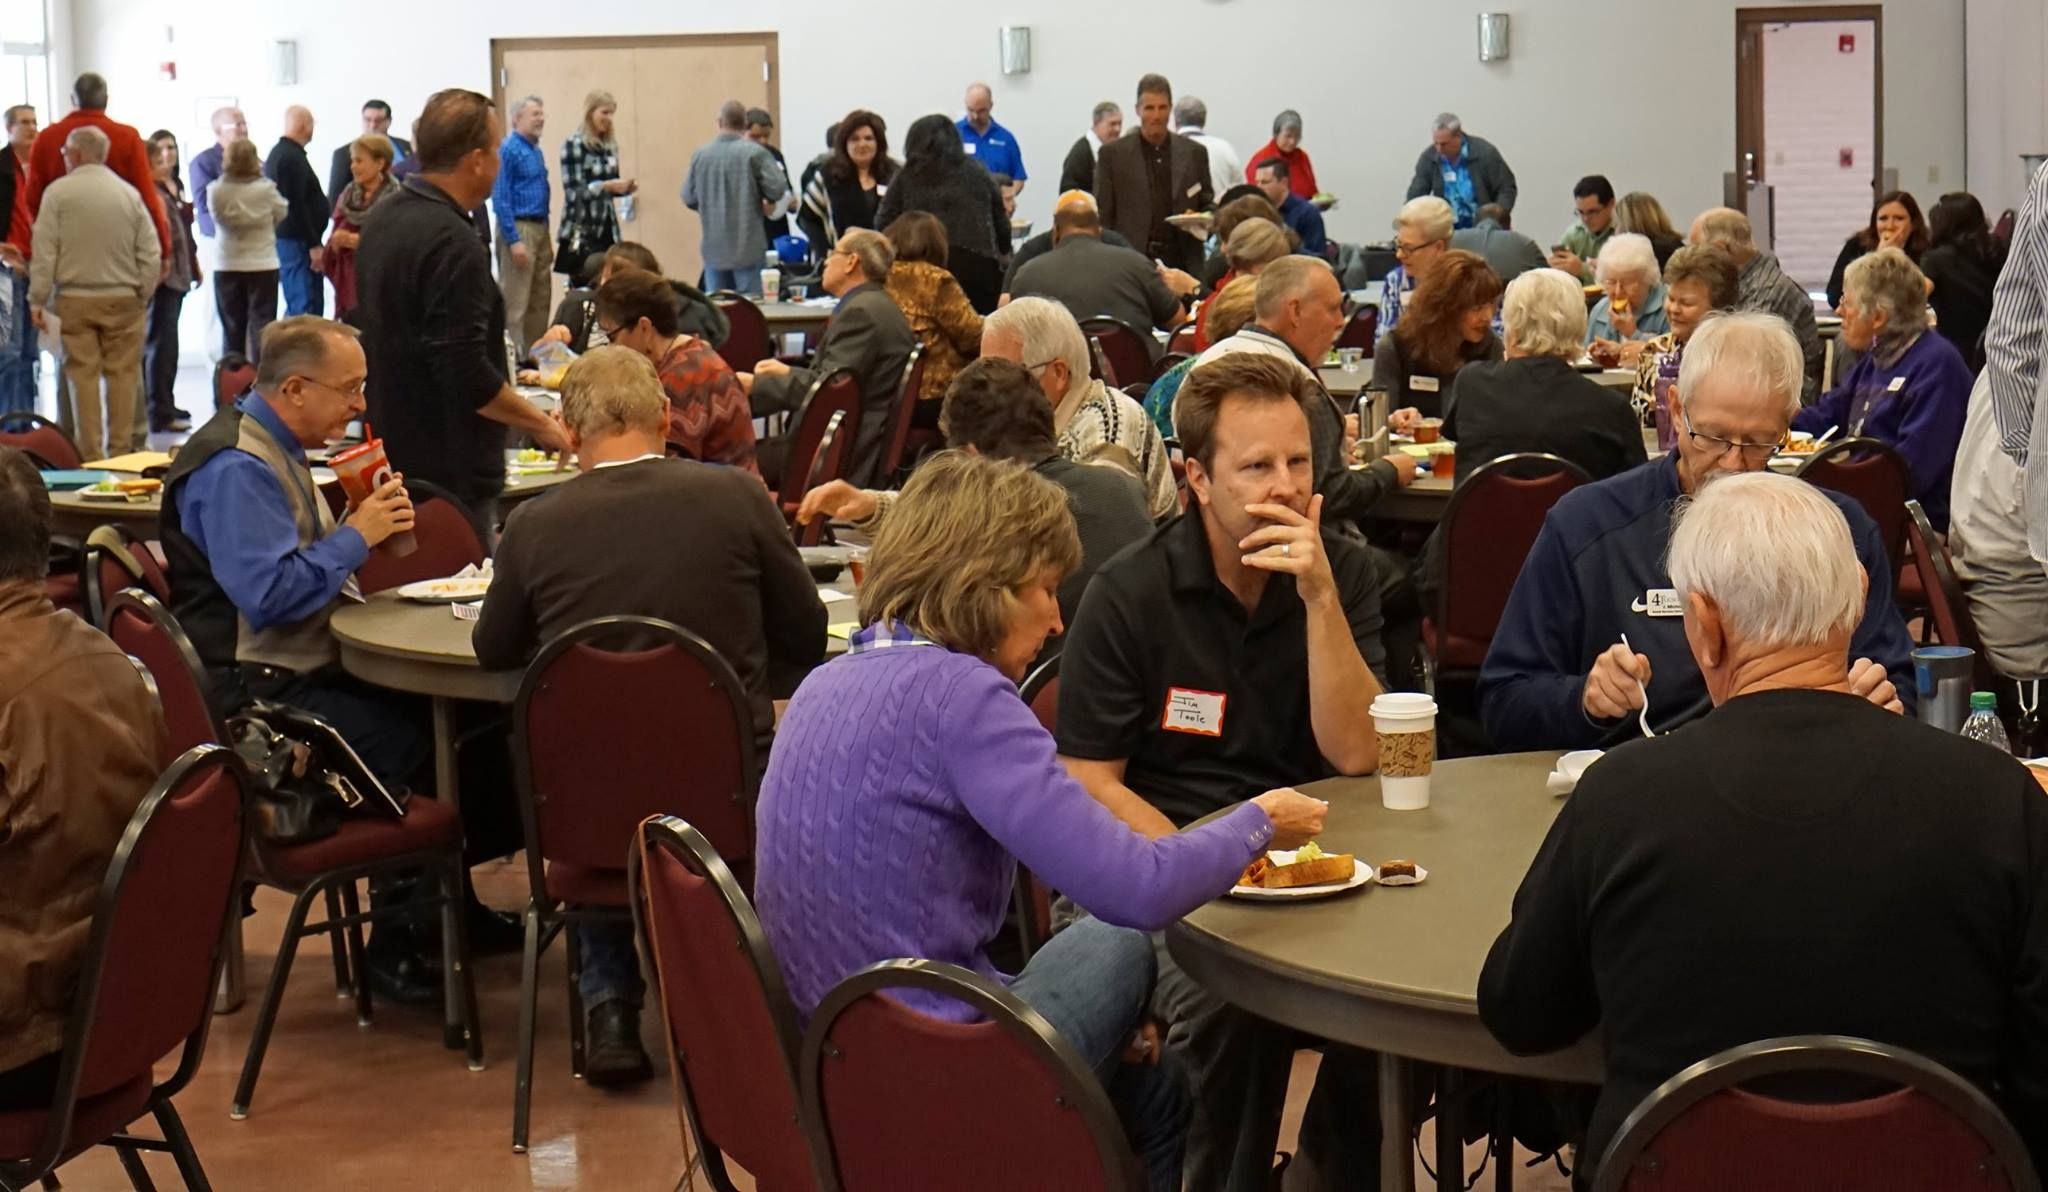 The Tucson Ministry Alliance (TMA) meets once a month to eat together, learn together, and pray together, asking God to help use His people to change their city, one issue at a time.